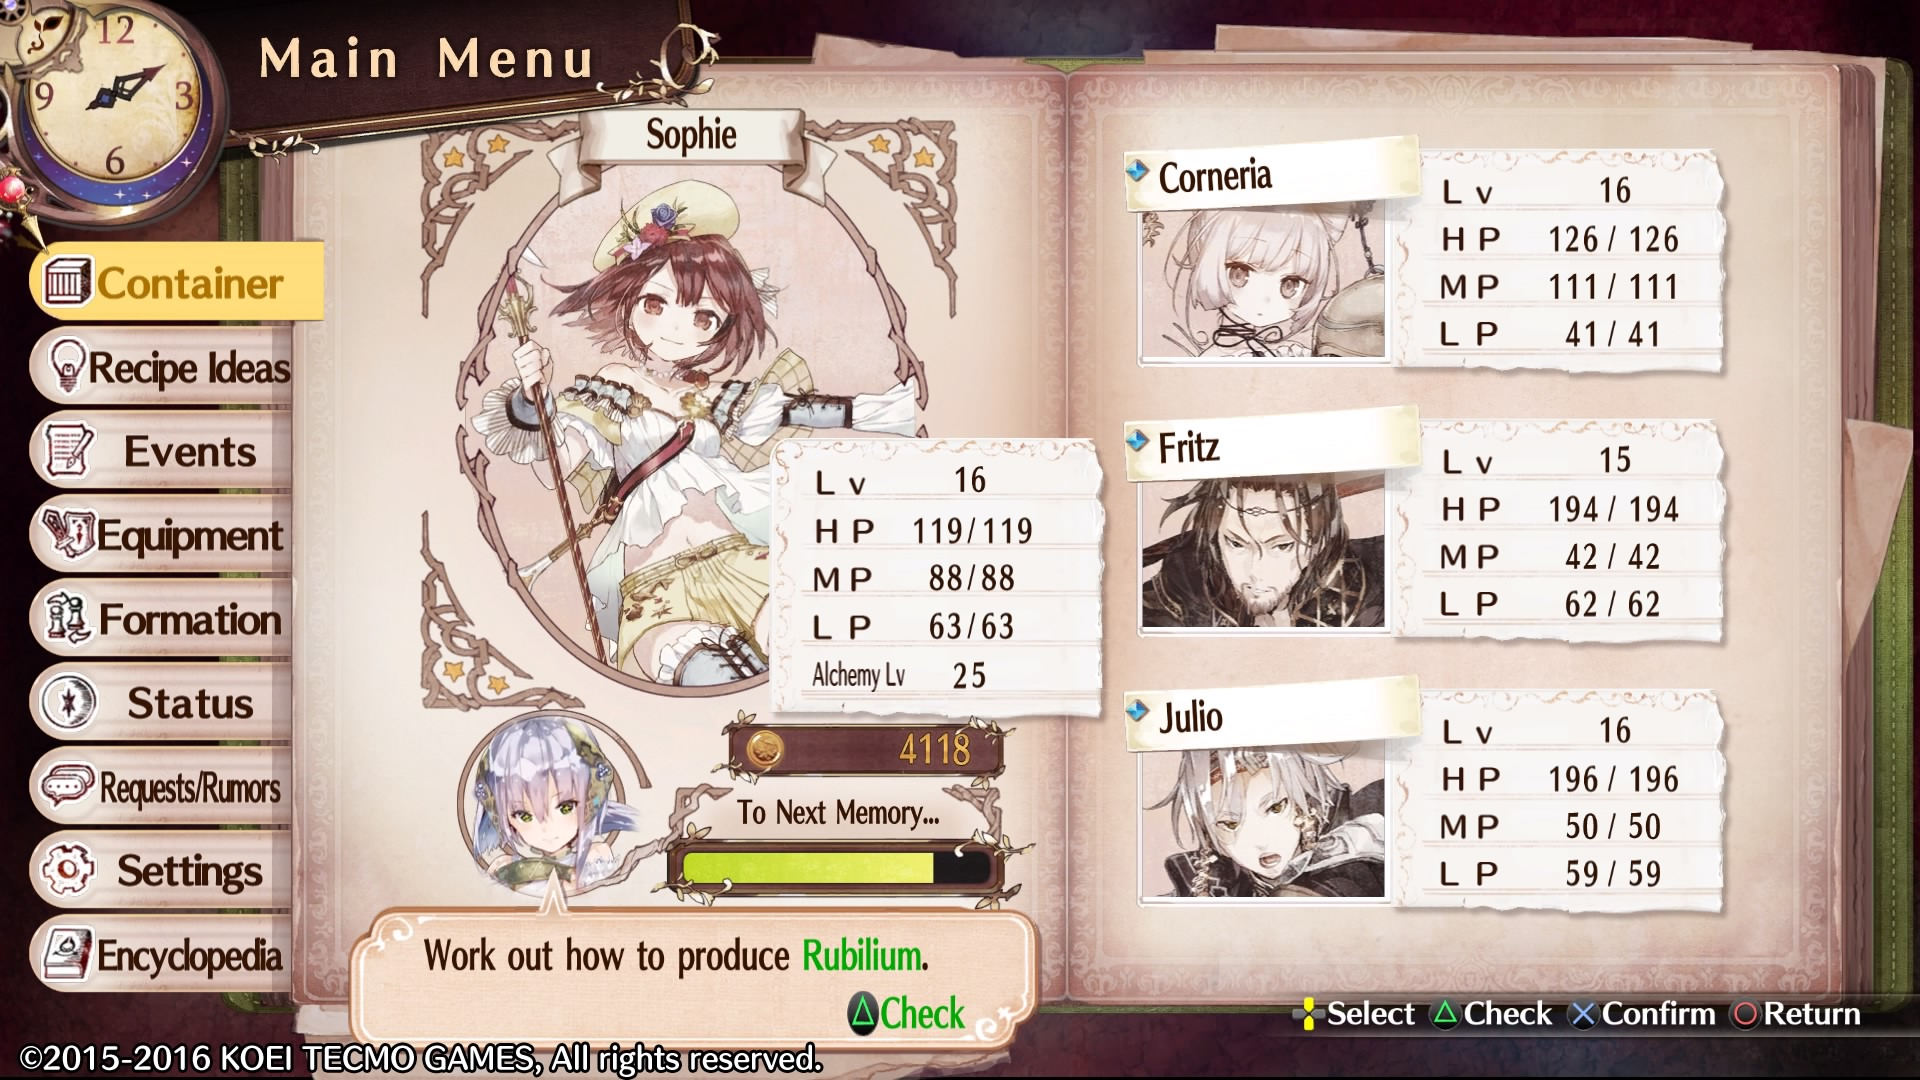 Atelier Mysterious Trilogy Deluxe Pack - recenzja i opinia o grze. Menu